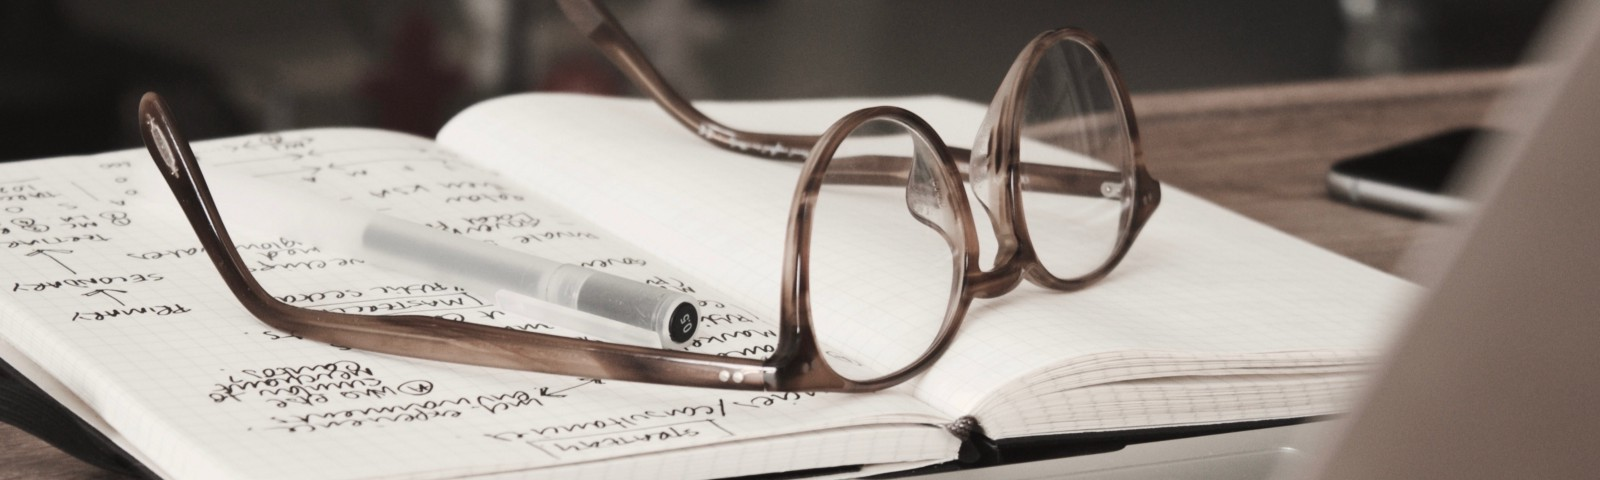 Eyeglasses and pen laying on top of open notebook.